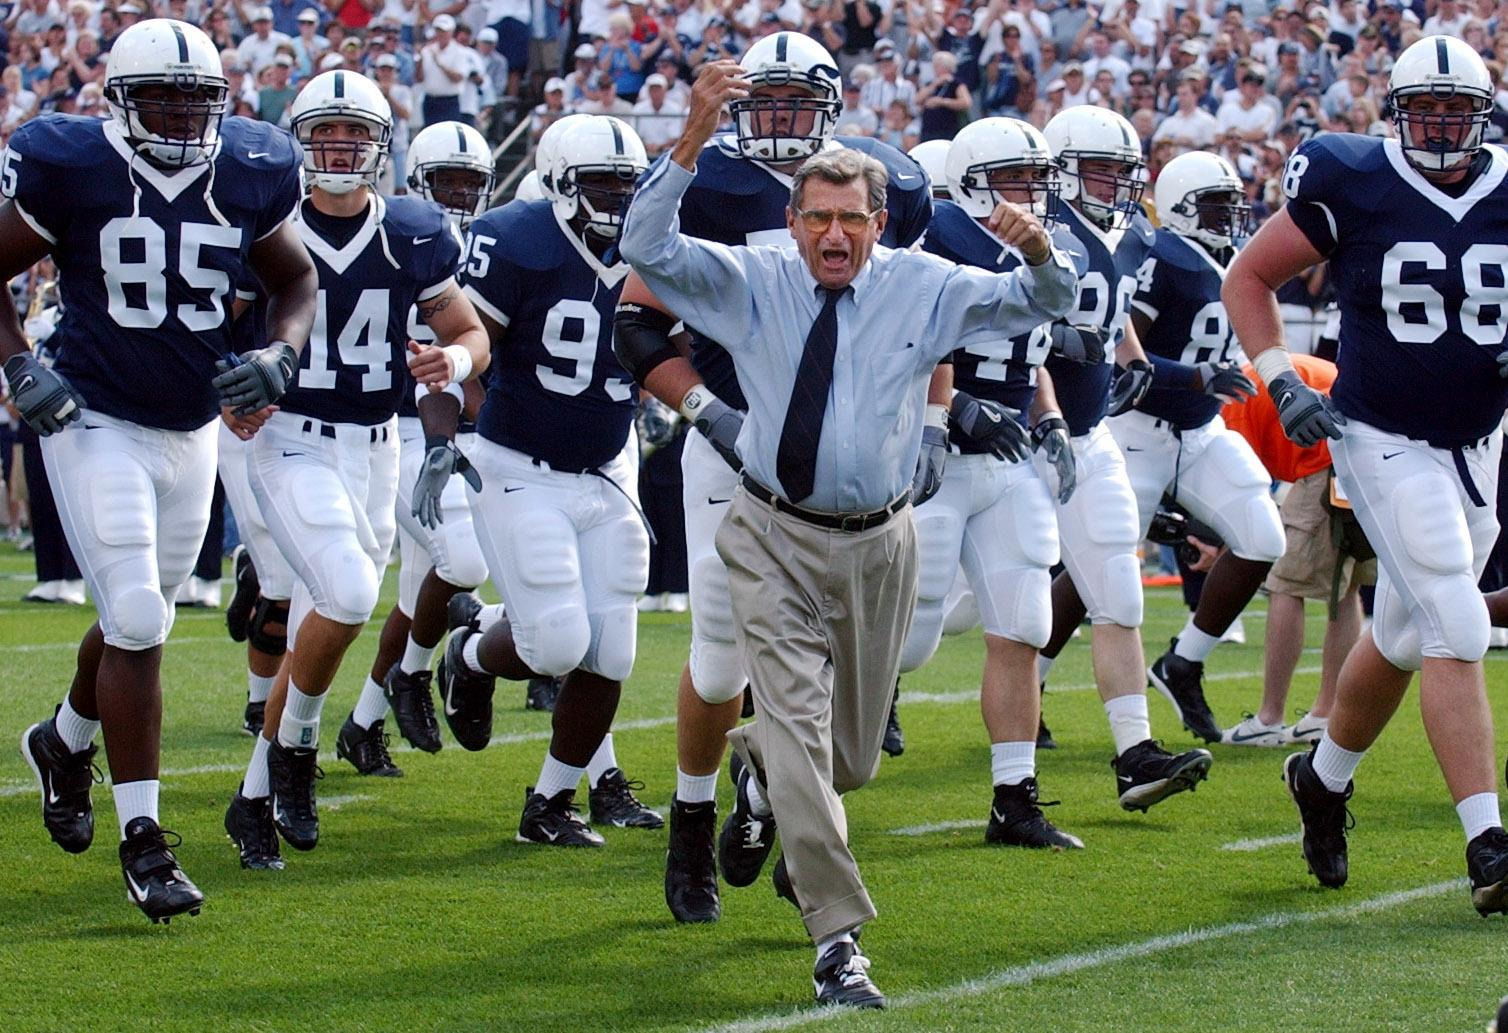 Penn_state_paterno_football